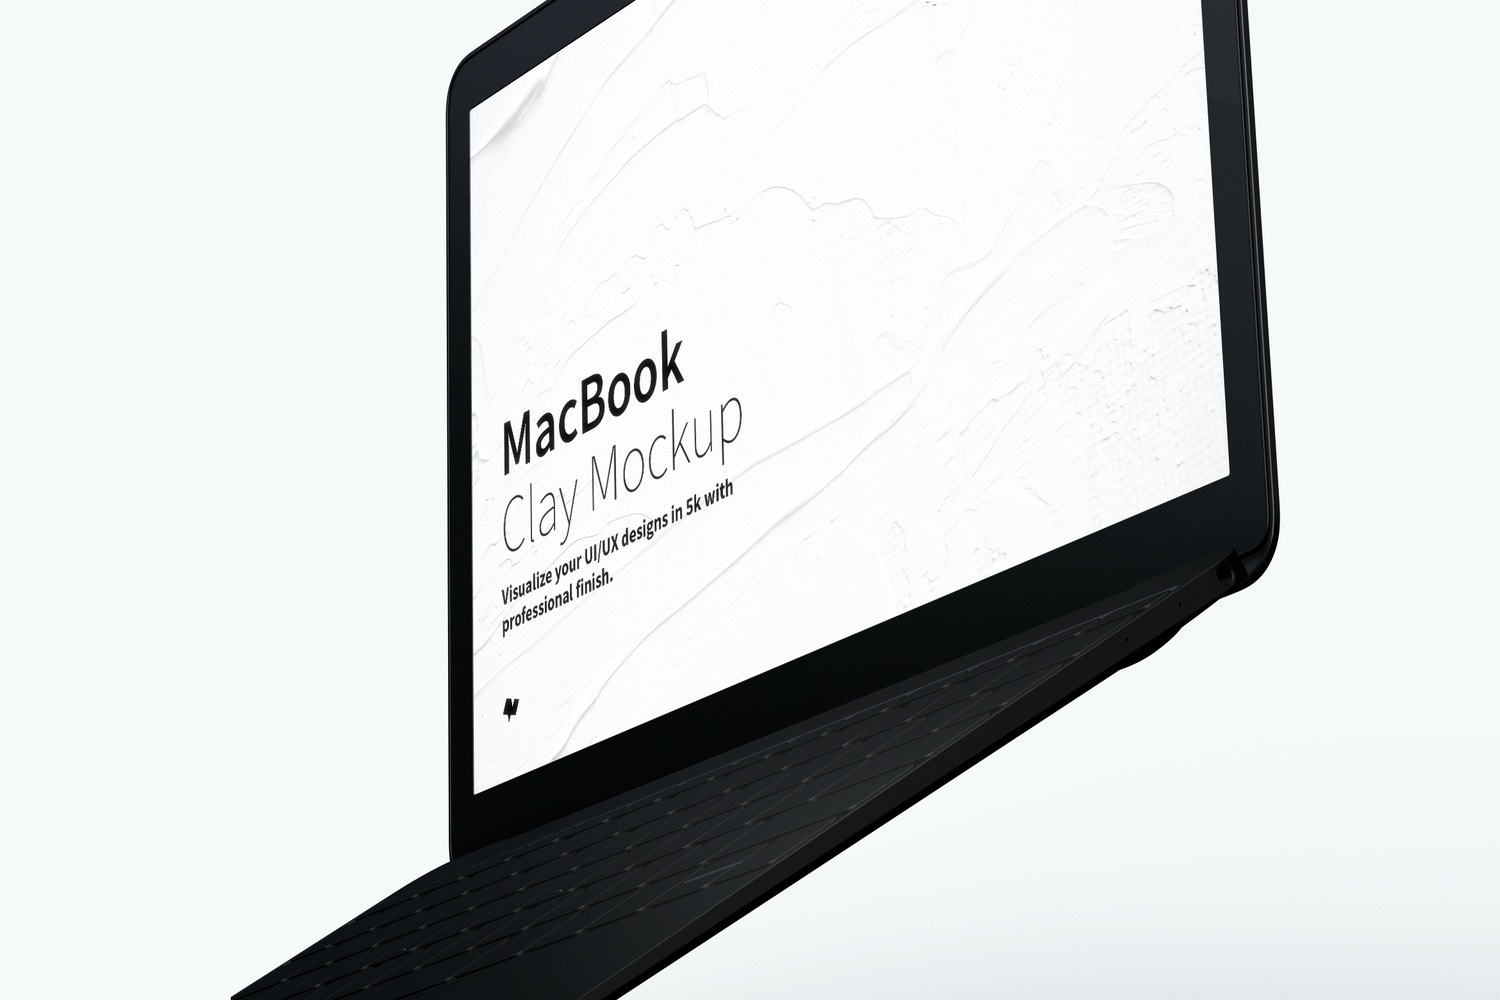 Clay MacBook Mockup, Floating Right View (3) by Original Mockups on Original Mockups